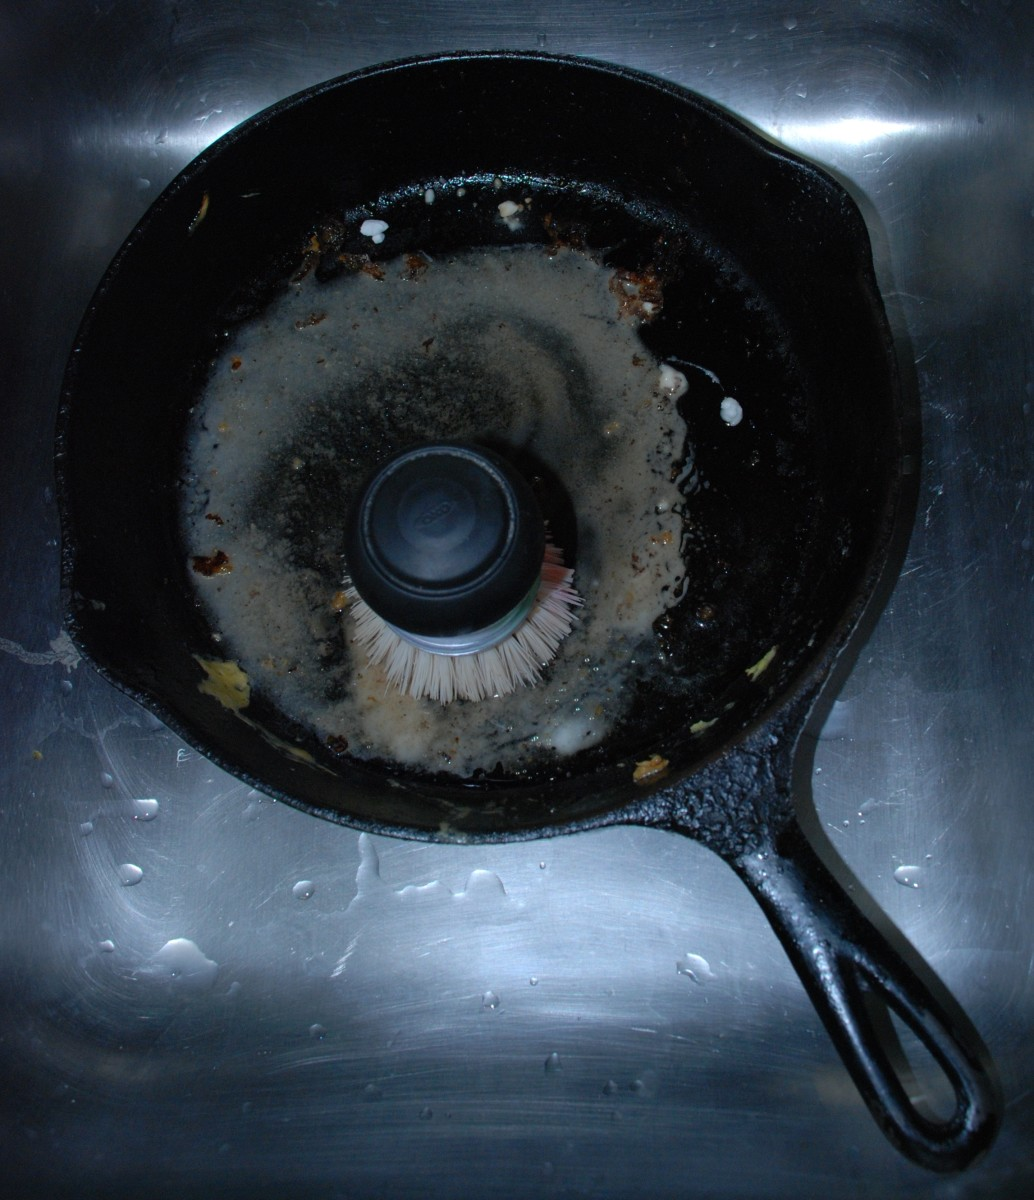 Scrubbing the baking soda-water mixture into the pan with a strong brush will help break down burnt food and other residue.